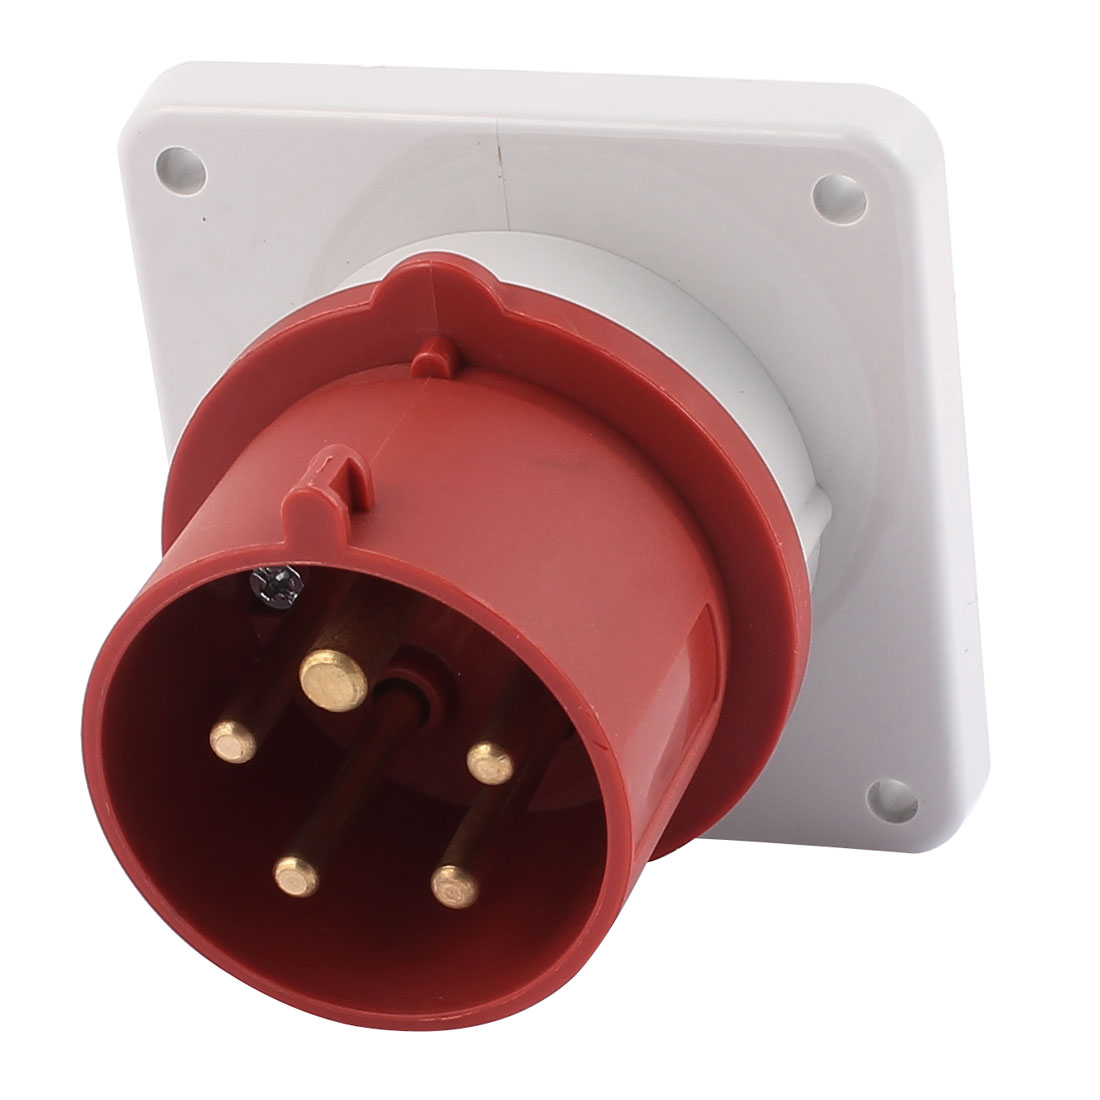 AC 240V-415V 16A IP44 3P+N+E 5 Terminal Male Industrial Panel Mounting Plug